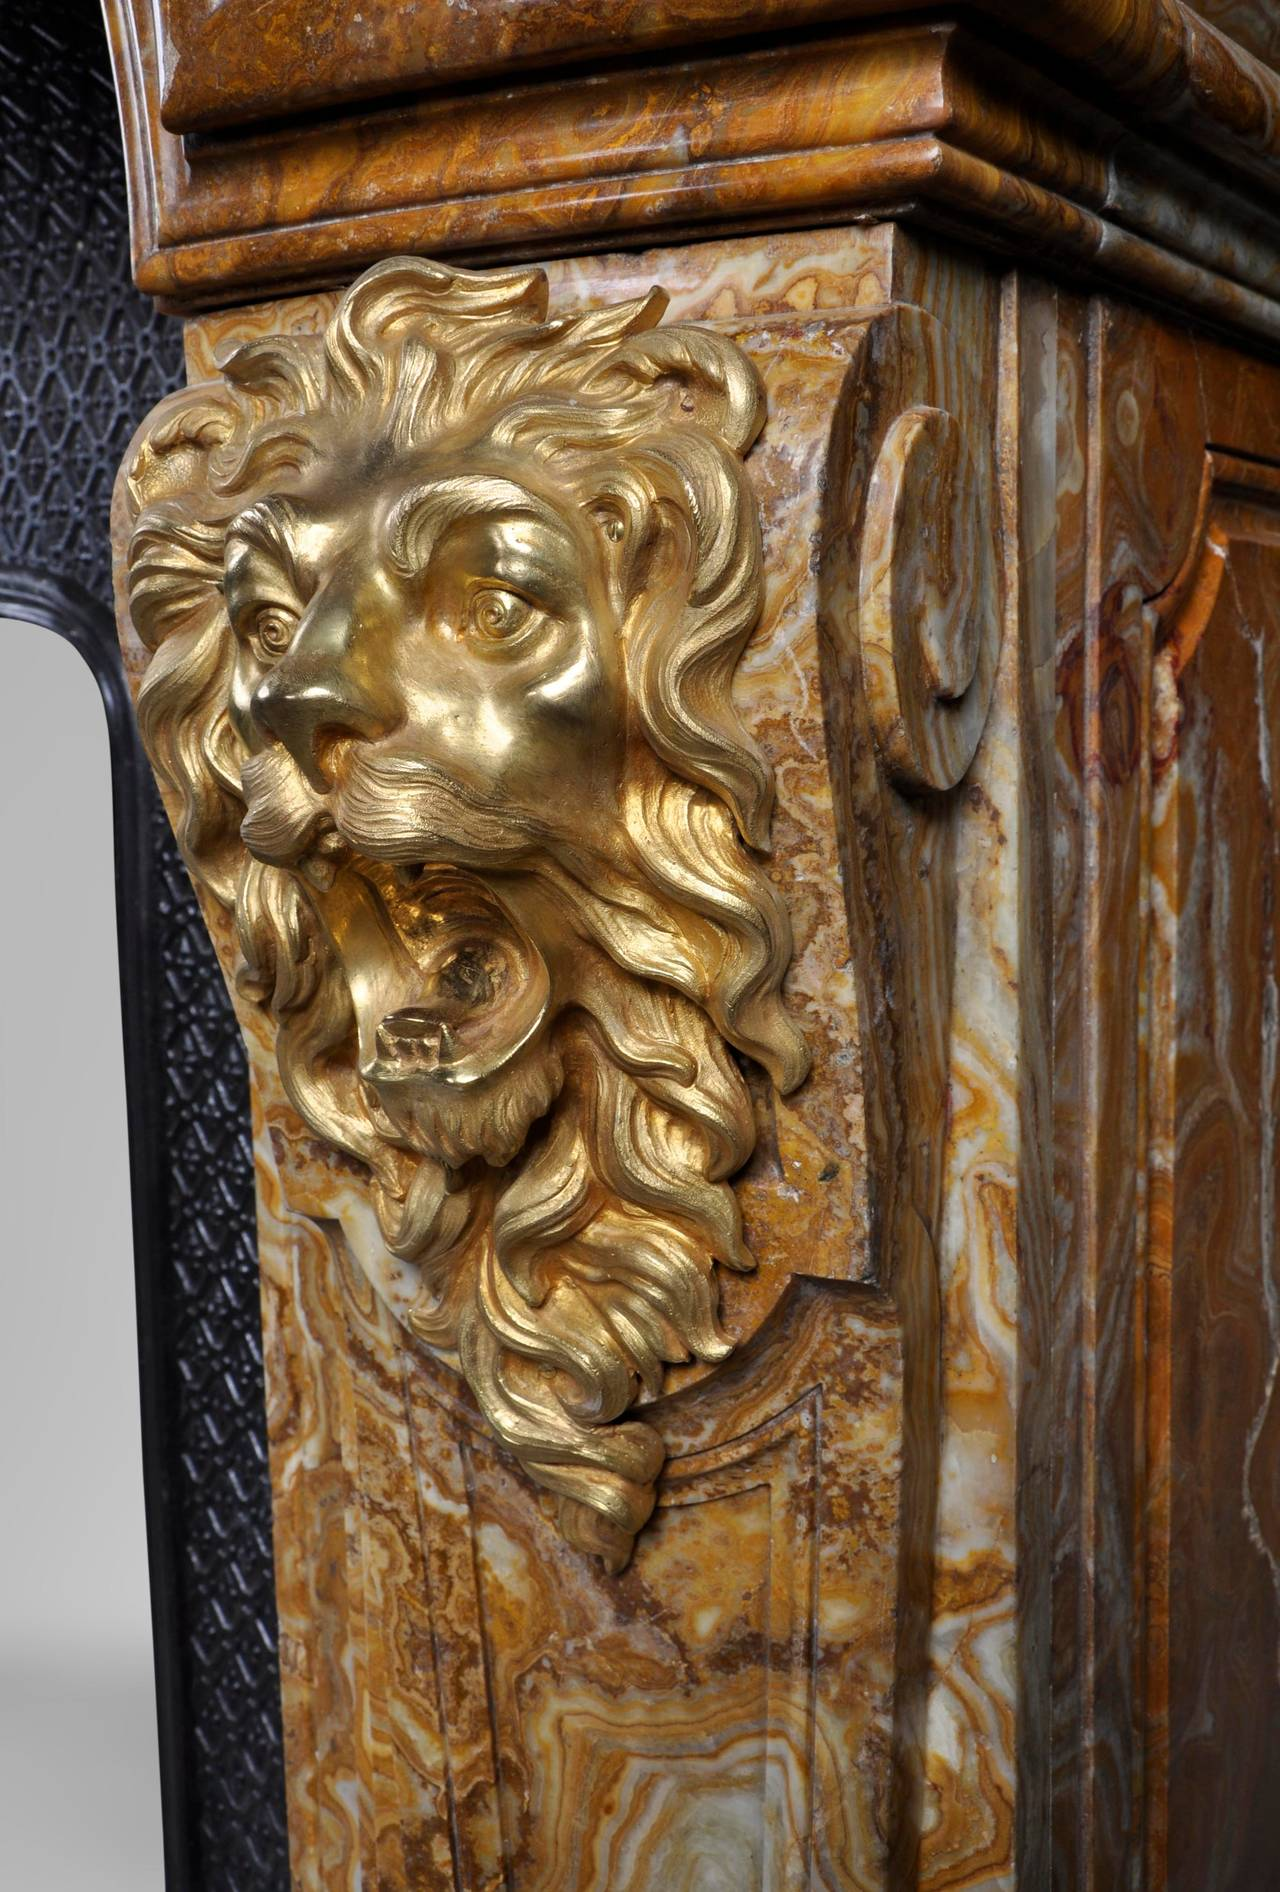 Louis XIV Style Fireplace in Alabastro di Busca with Gilded Bronze 4